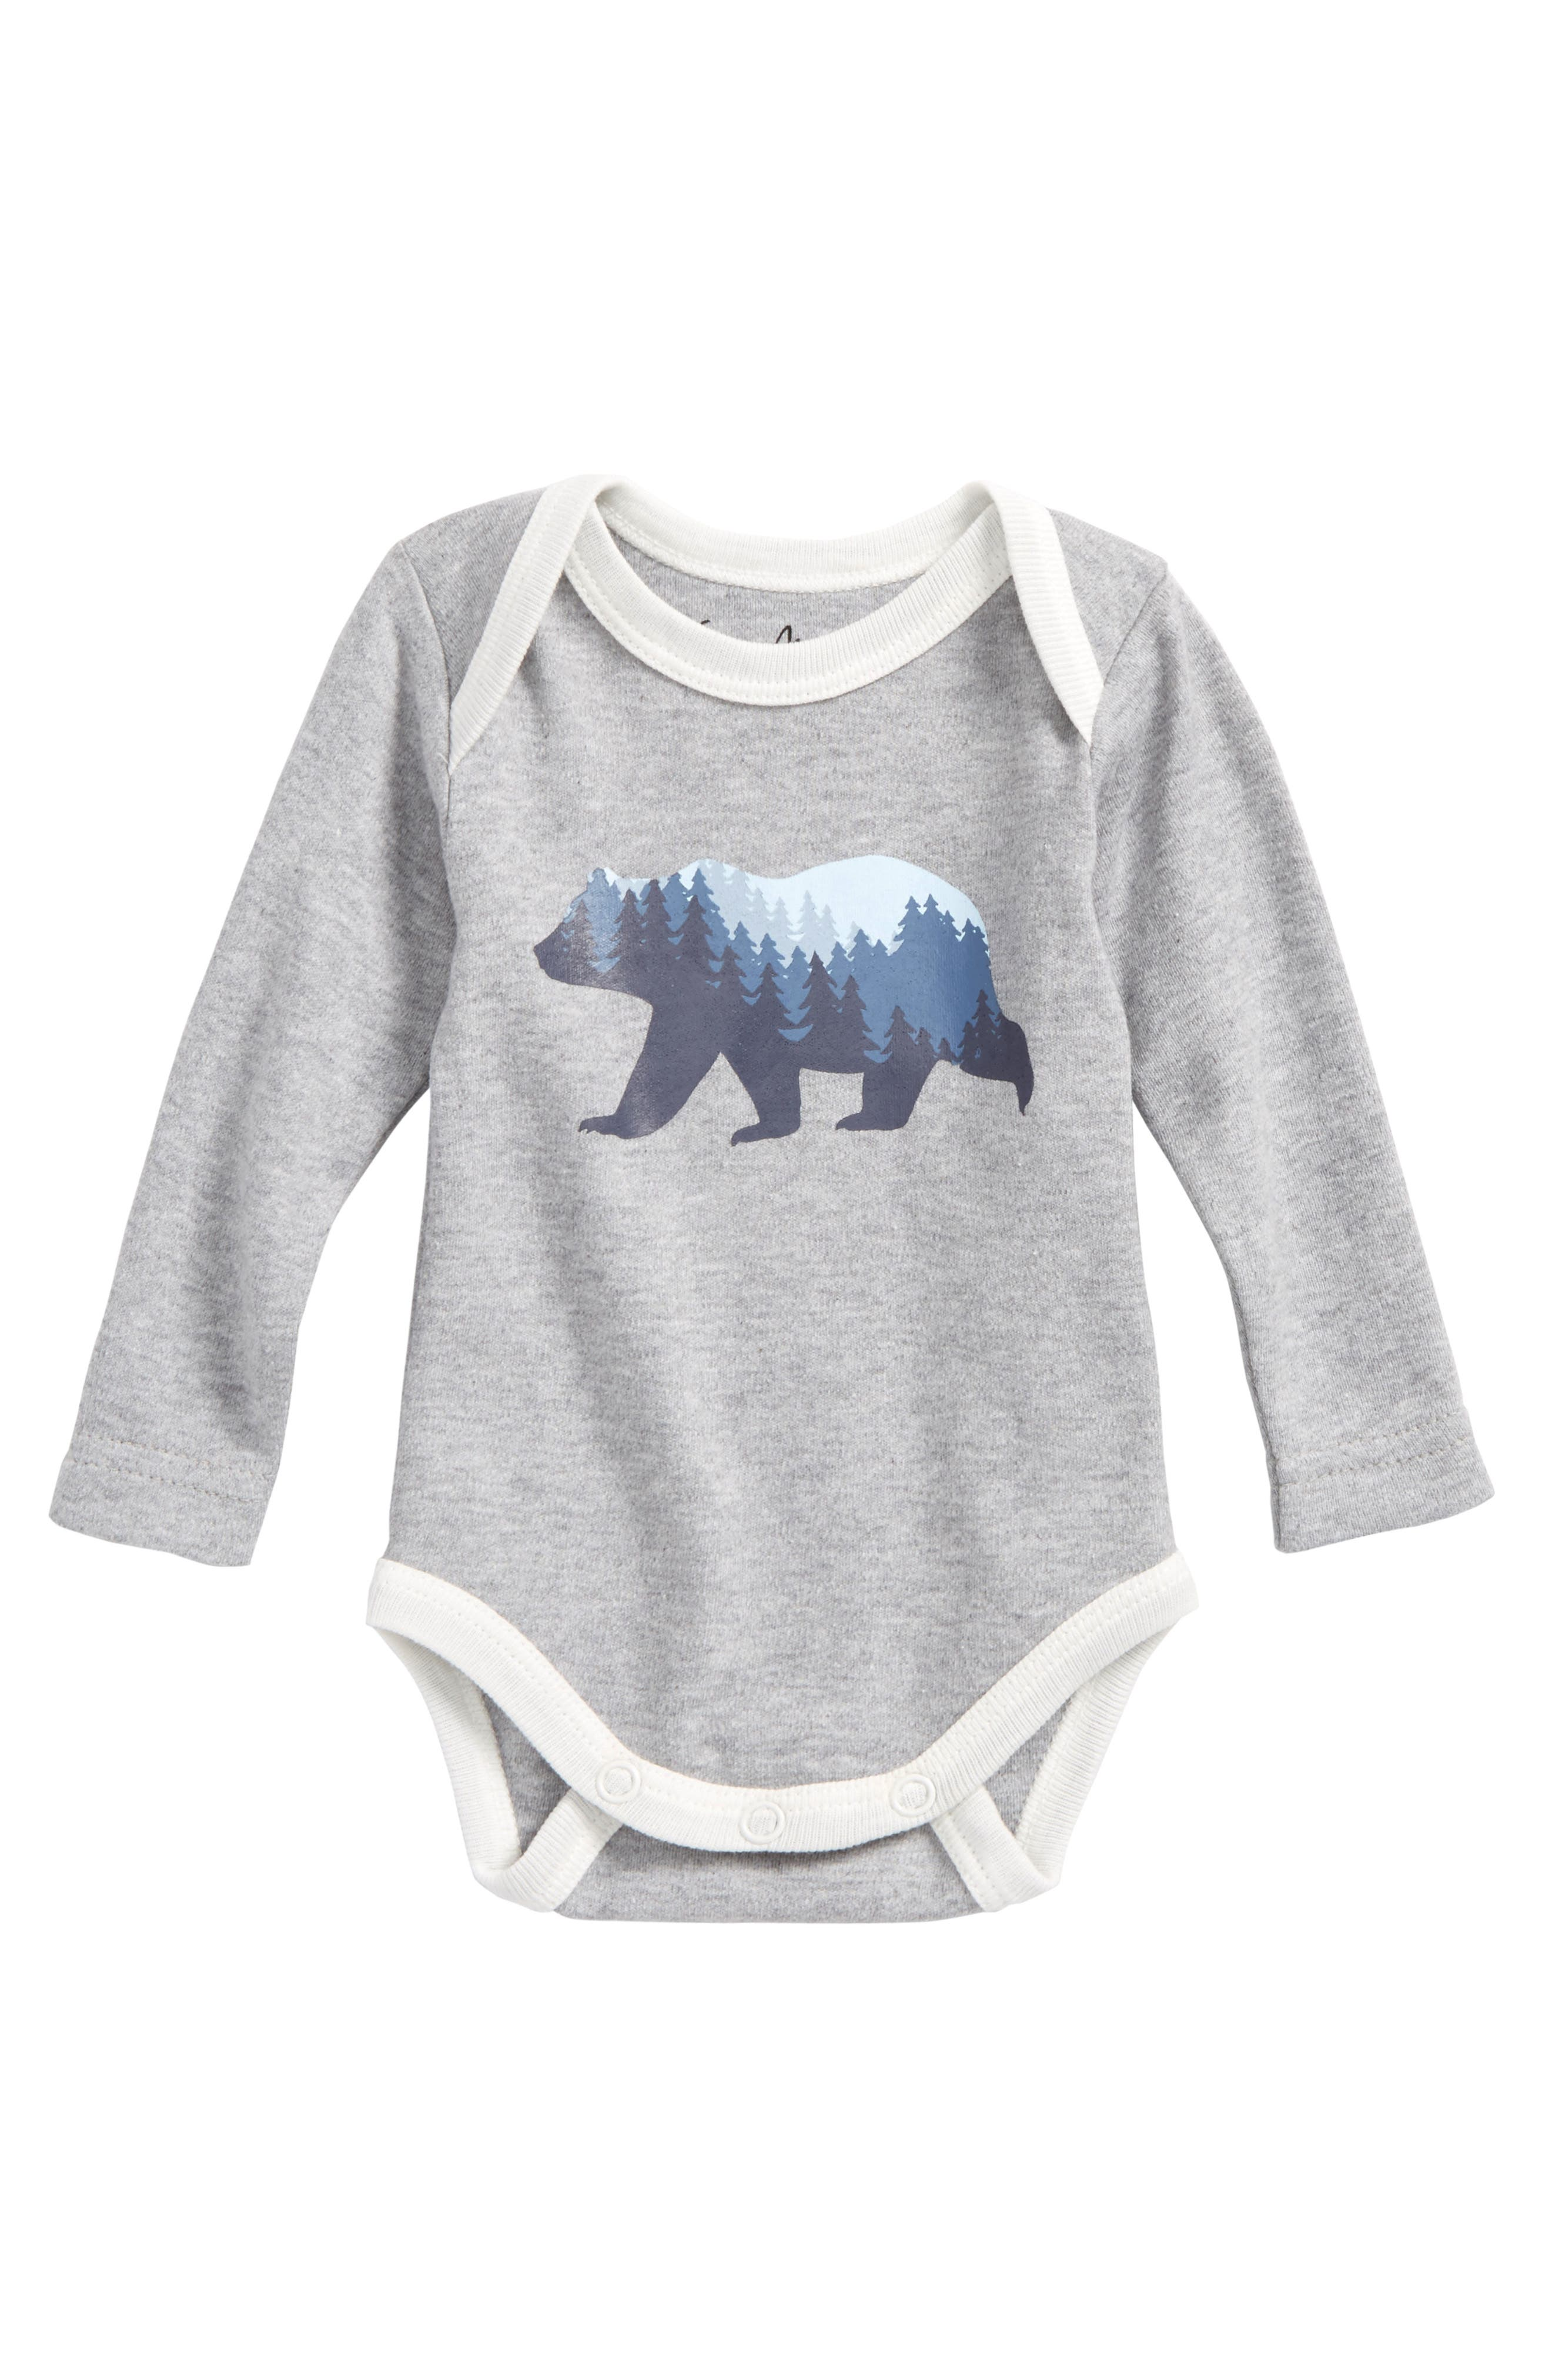 Bear Graphic Organic Cotton Bodysuit,                             Main thumbnail 1, color,                             Heather Grey